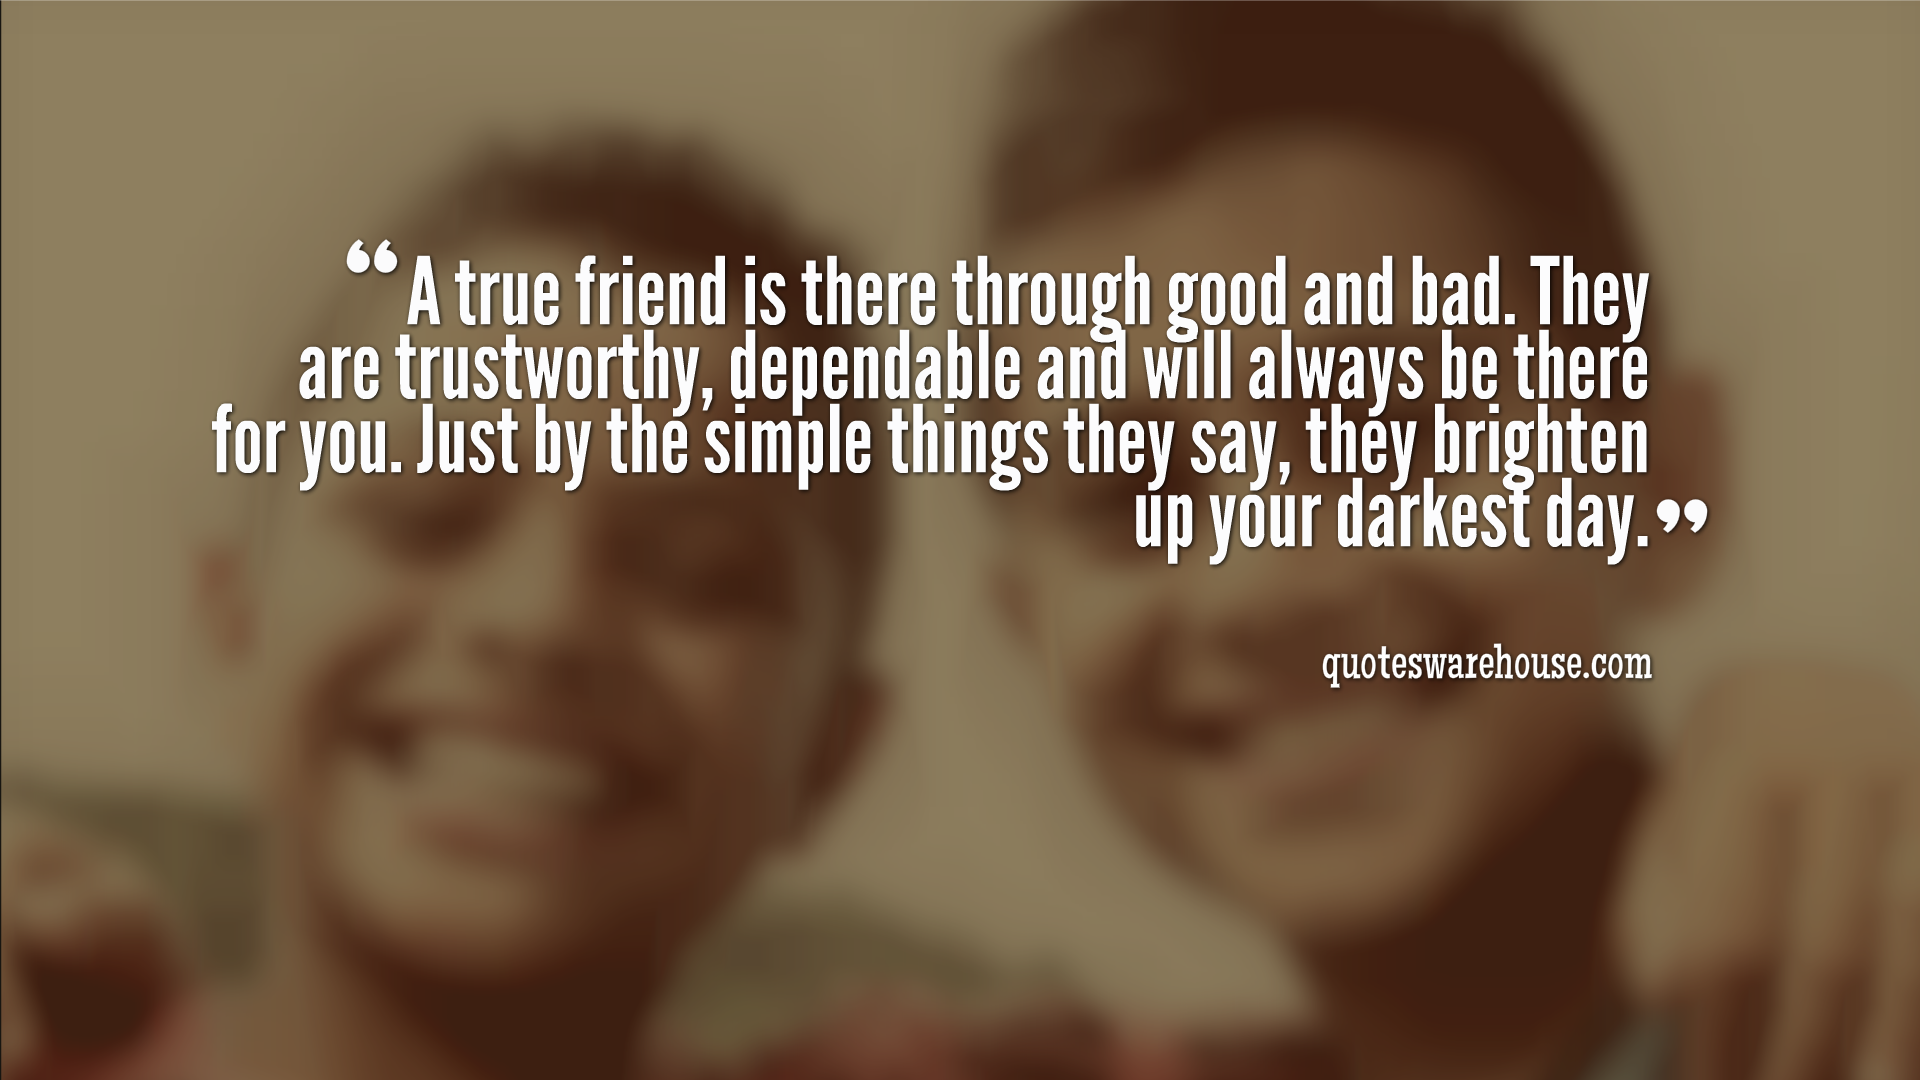 A Friend Through Good And Bad Quotes Warehouse Bad Quotes Friendship Quotes True Friends